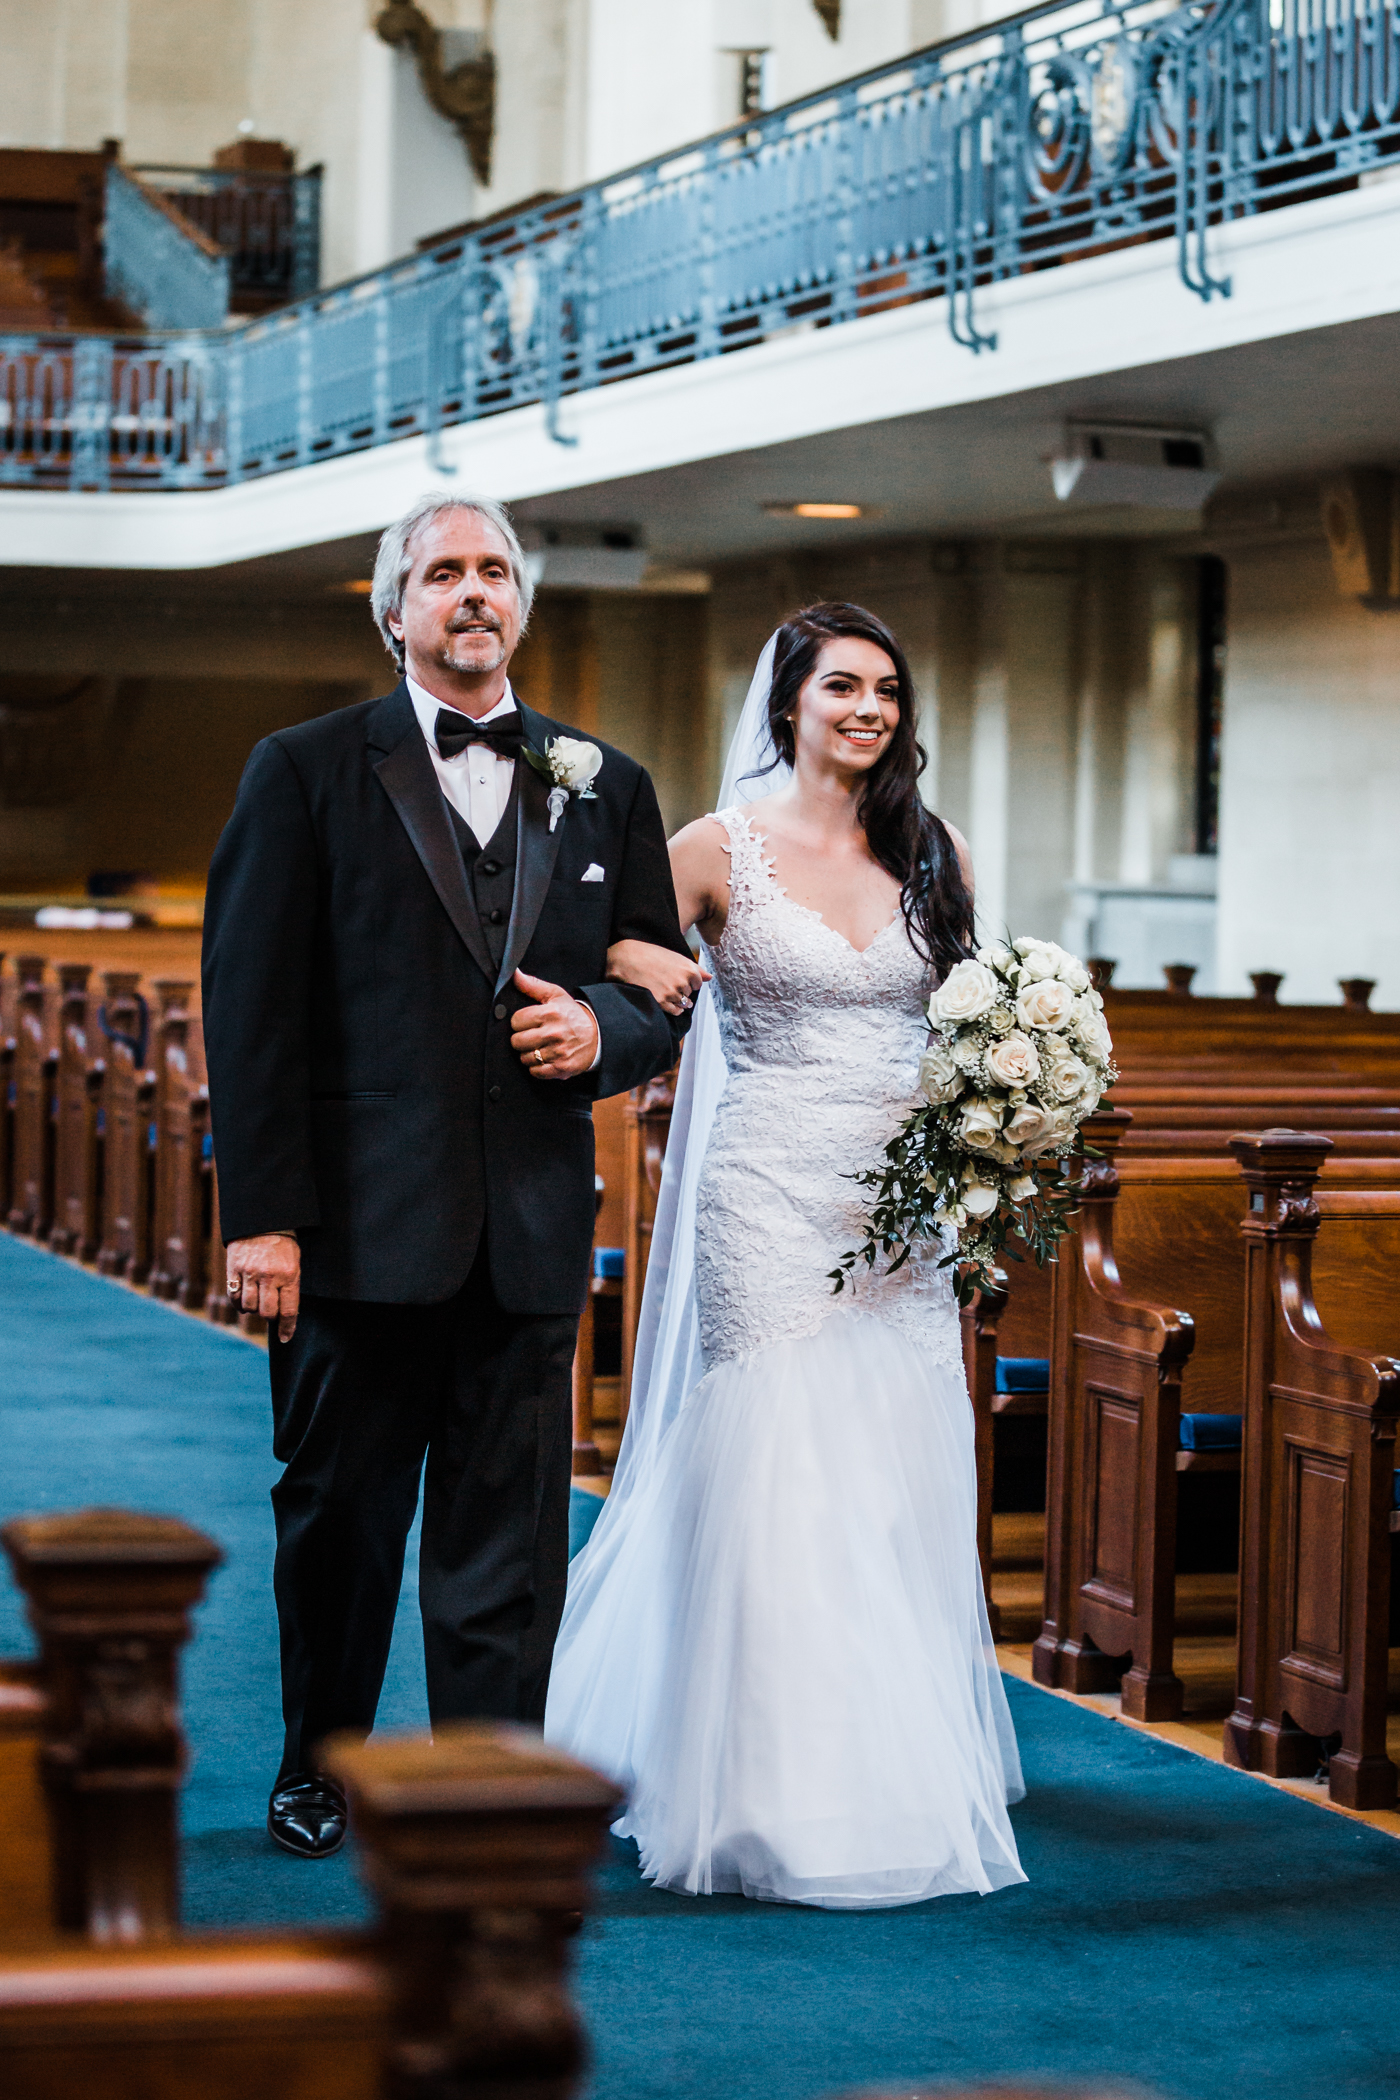 bride walking down the aisle with her father at Naval Academy wedding in Annapolis, MD